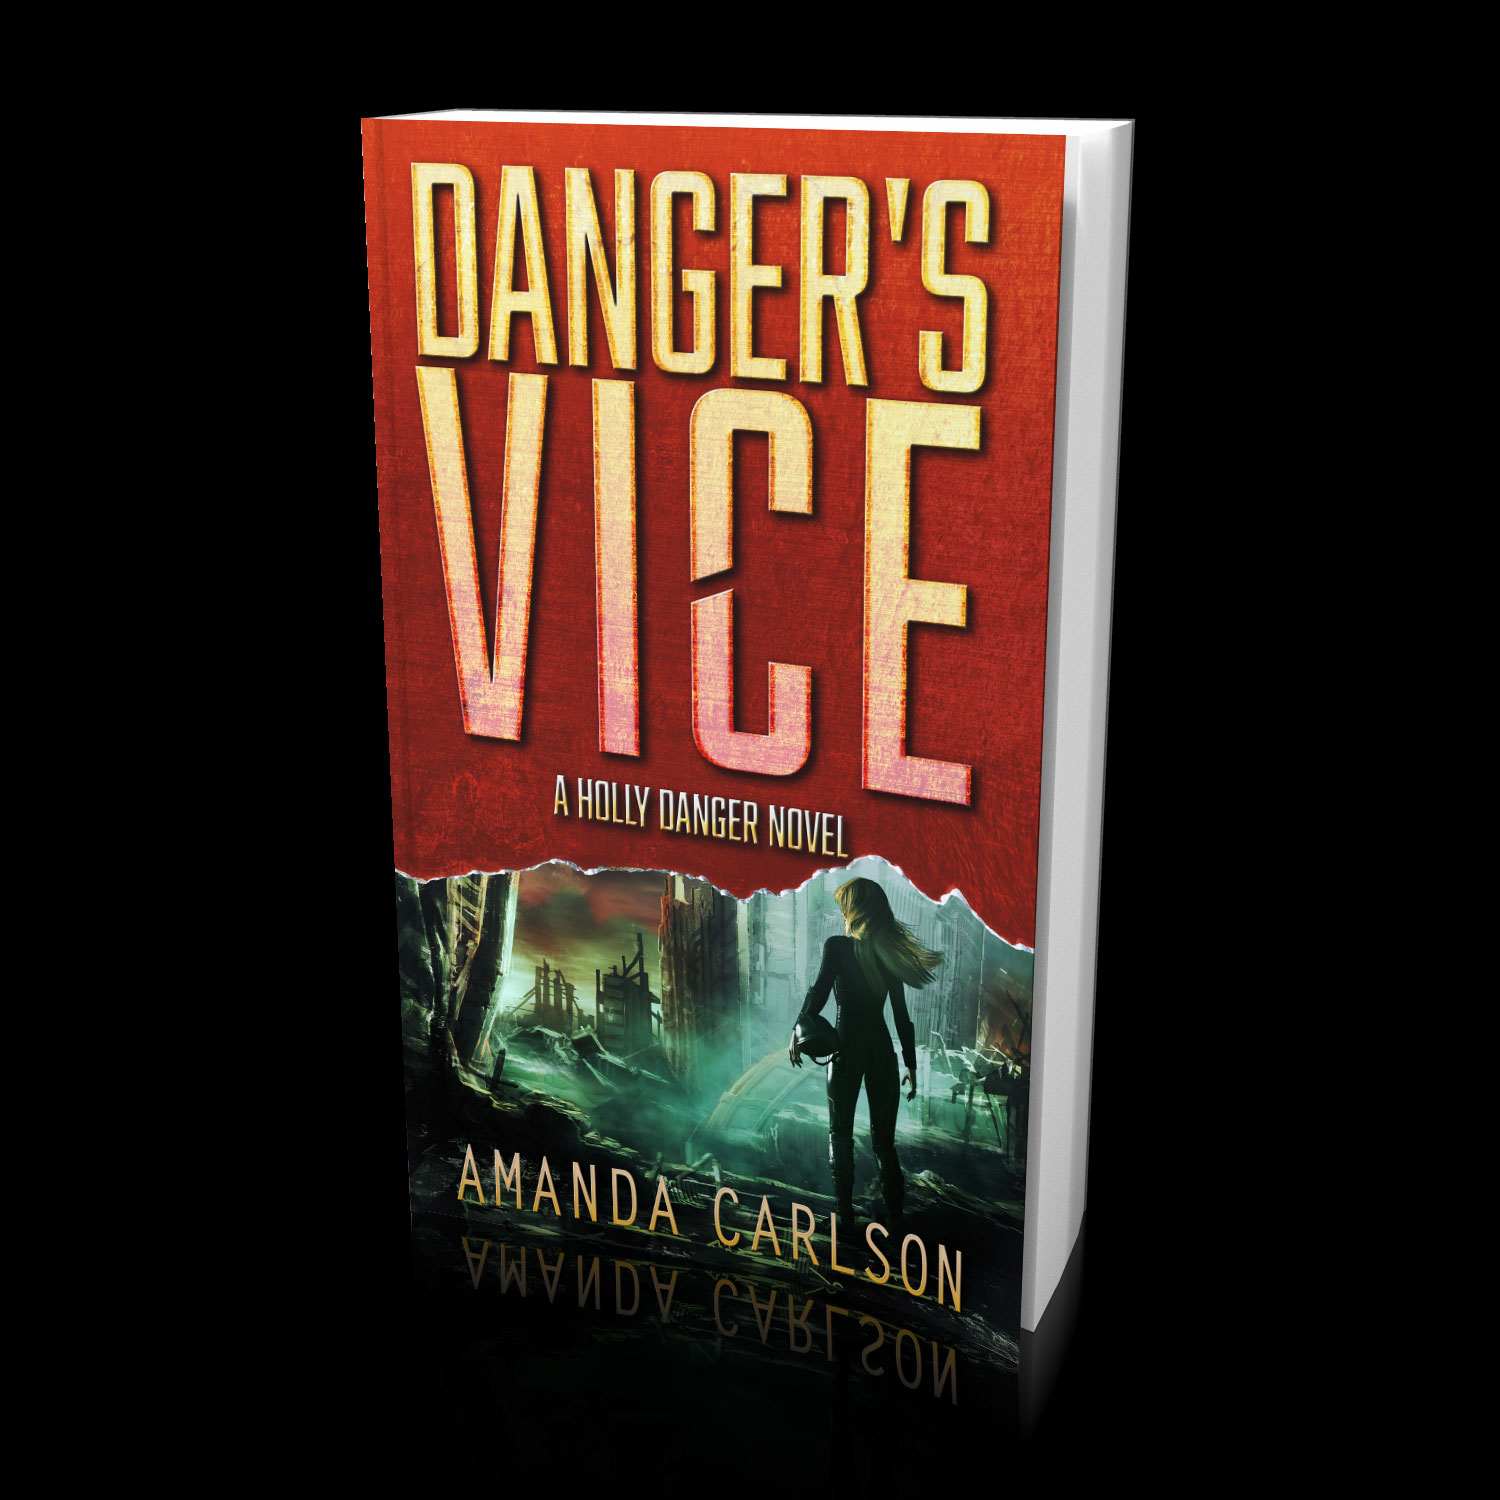 Danger's Vice: Book 2